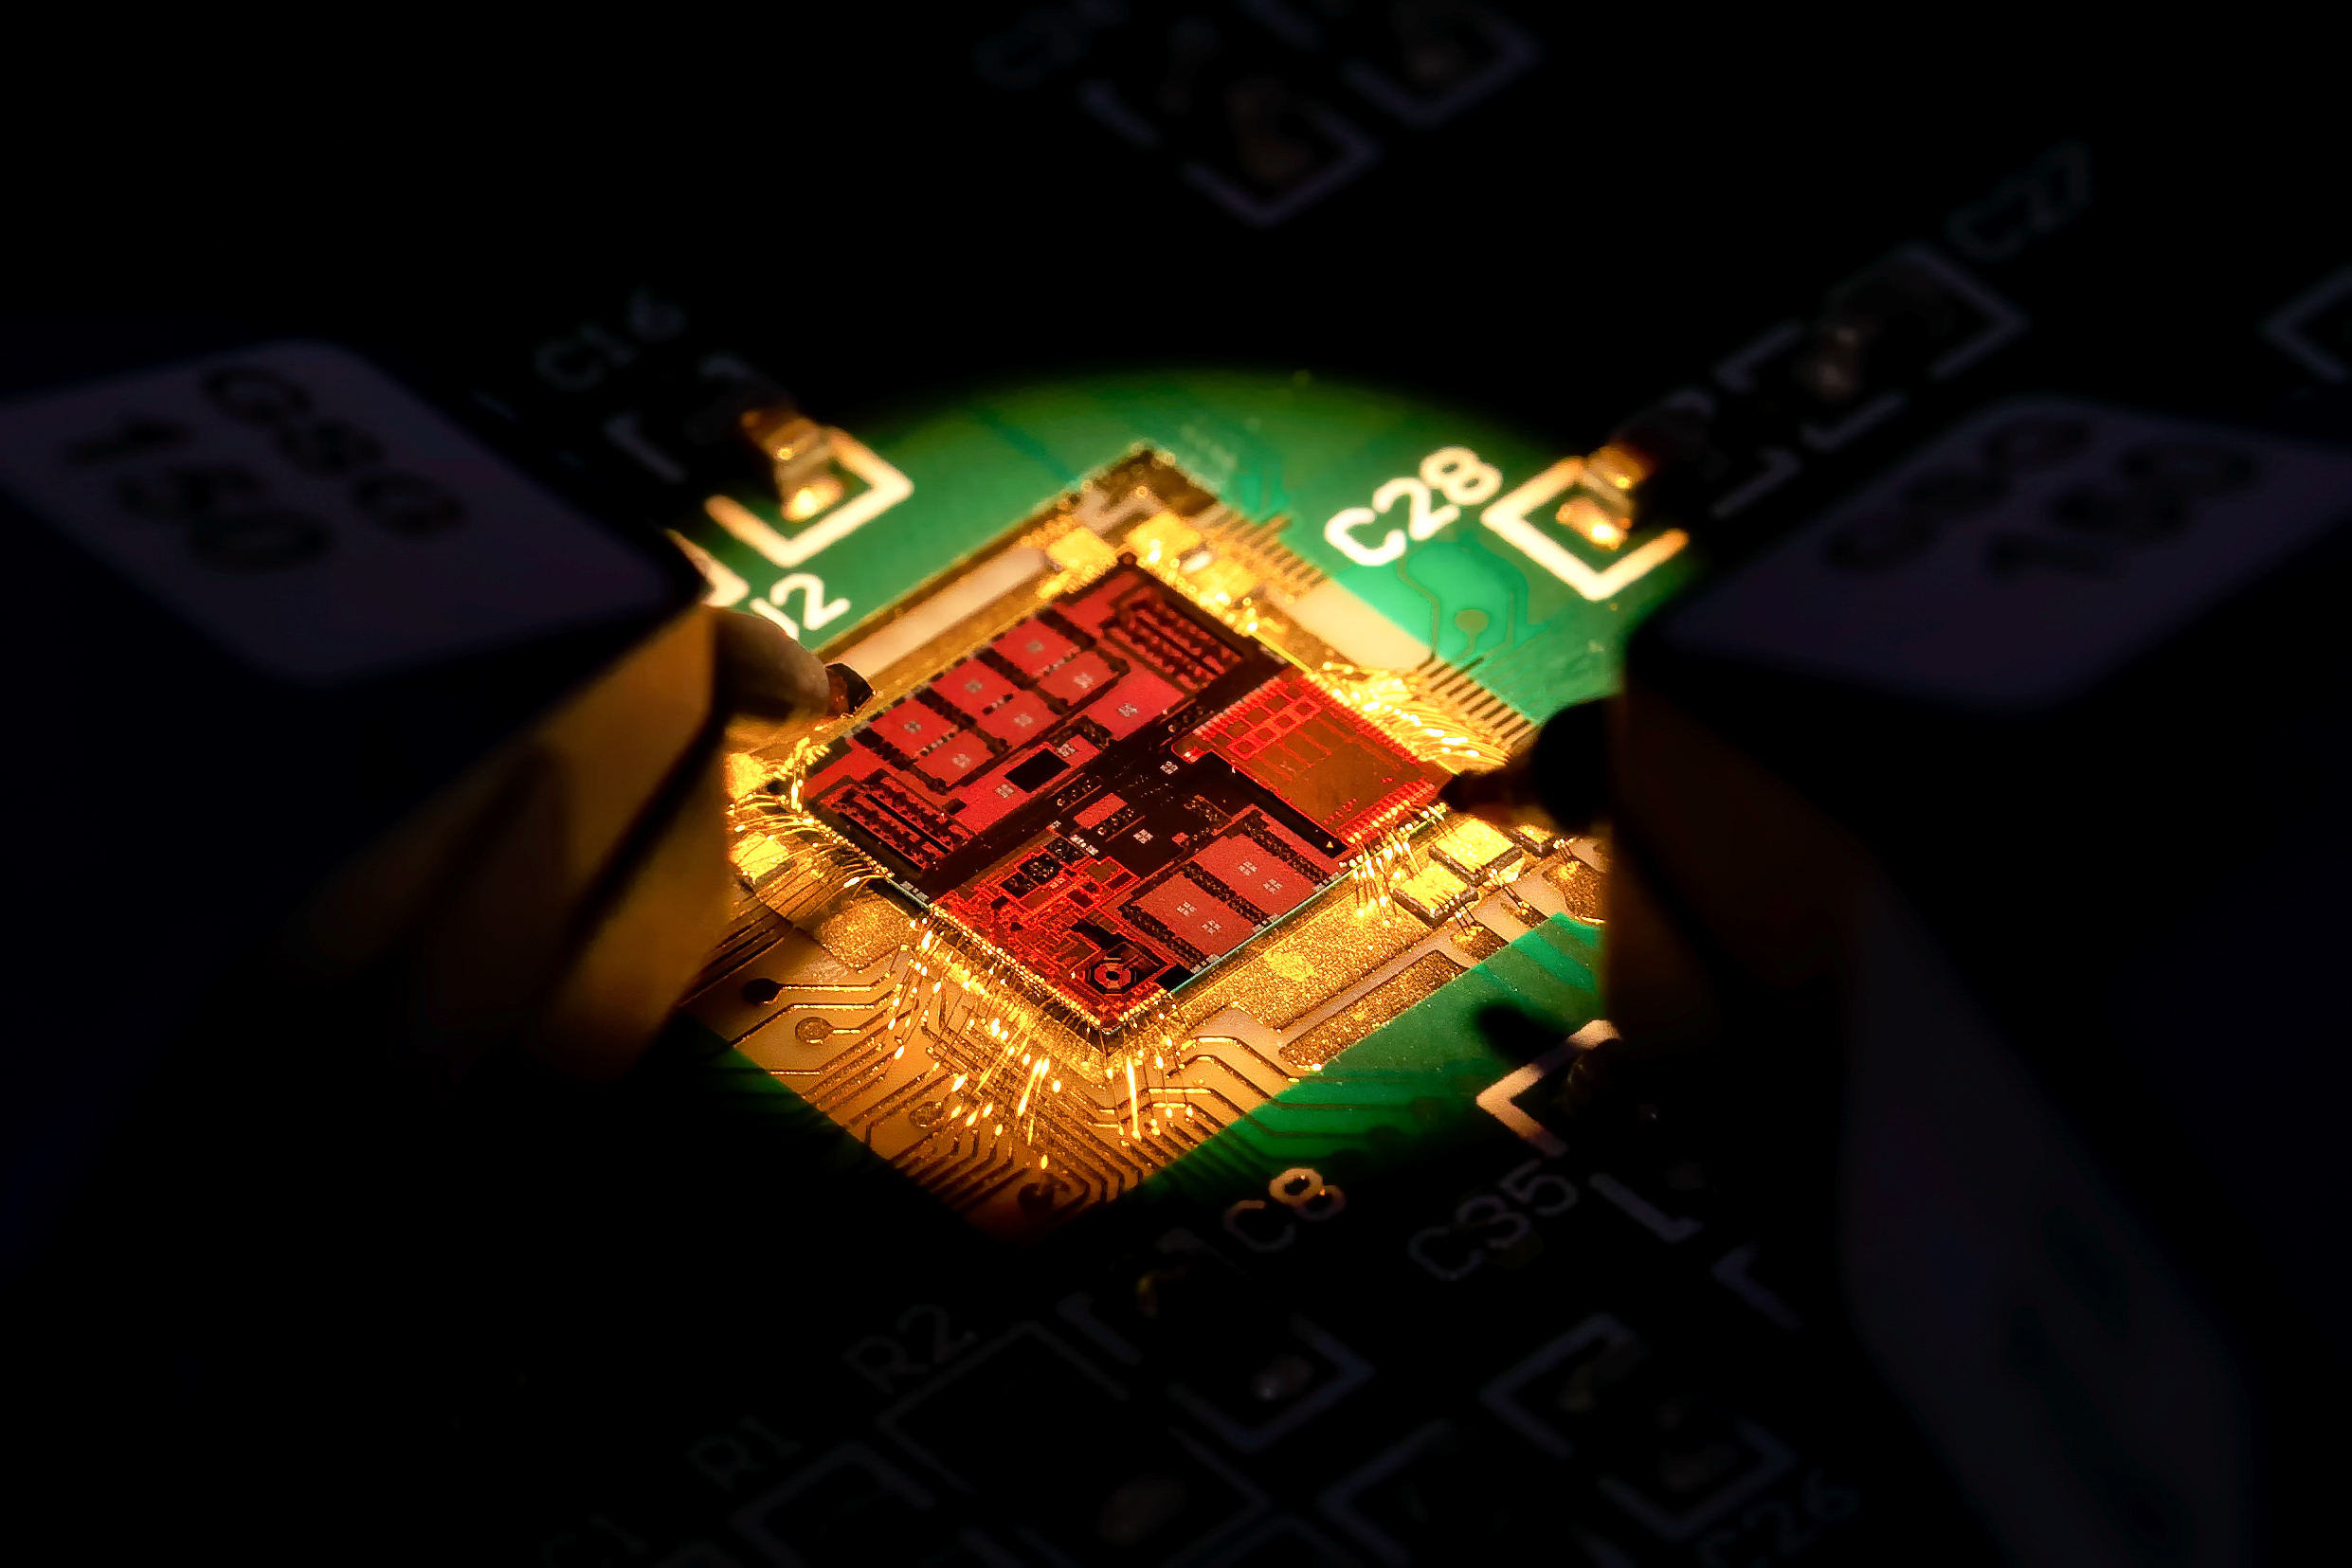 China-made millimeter wave chip sets world record for detection distance-CnTechPost